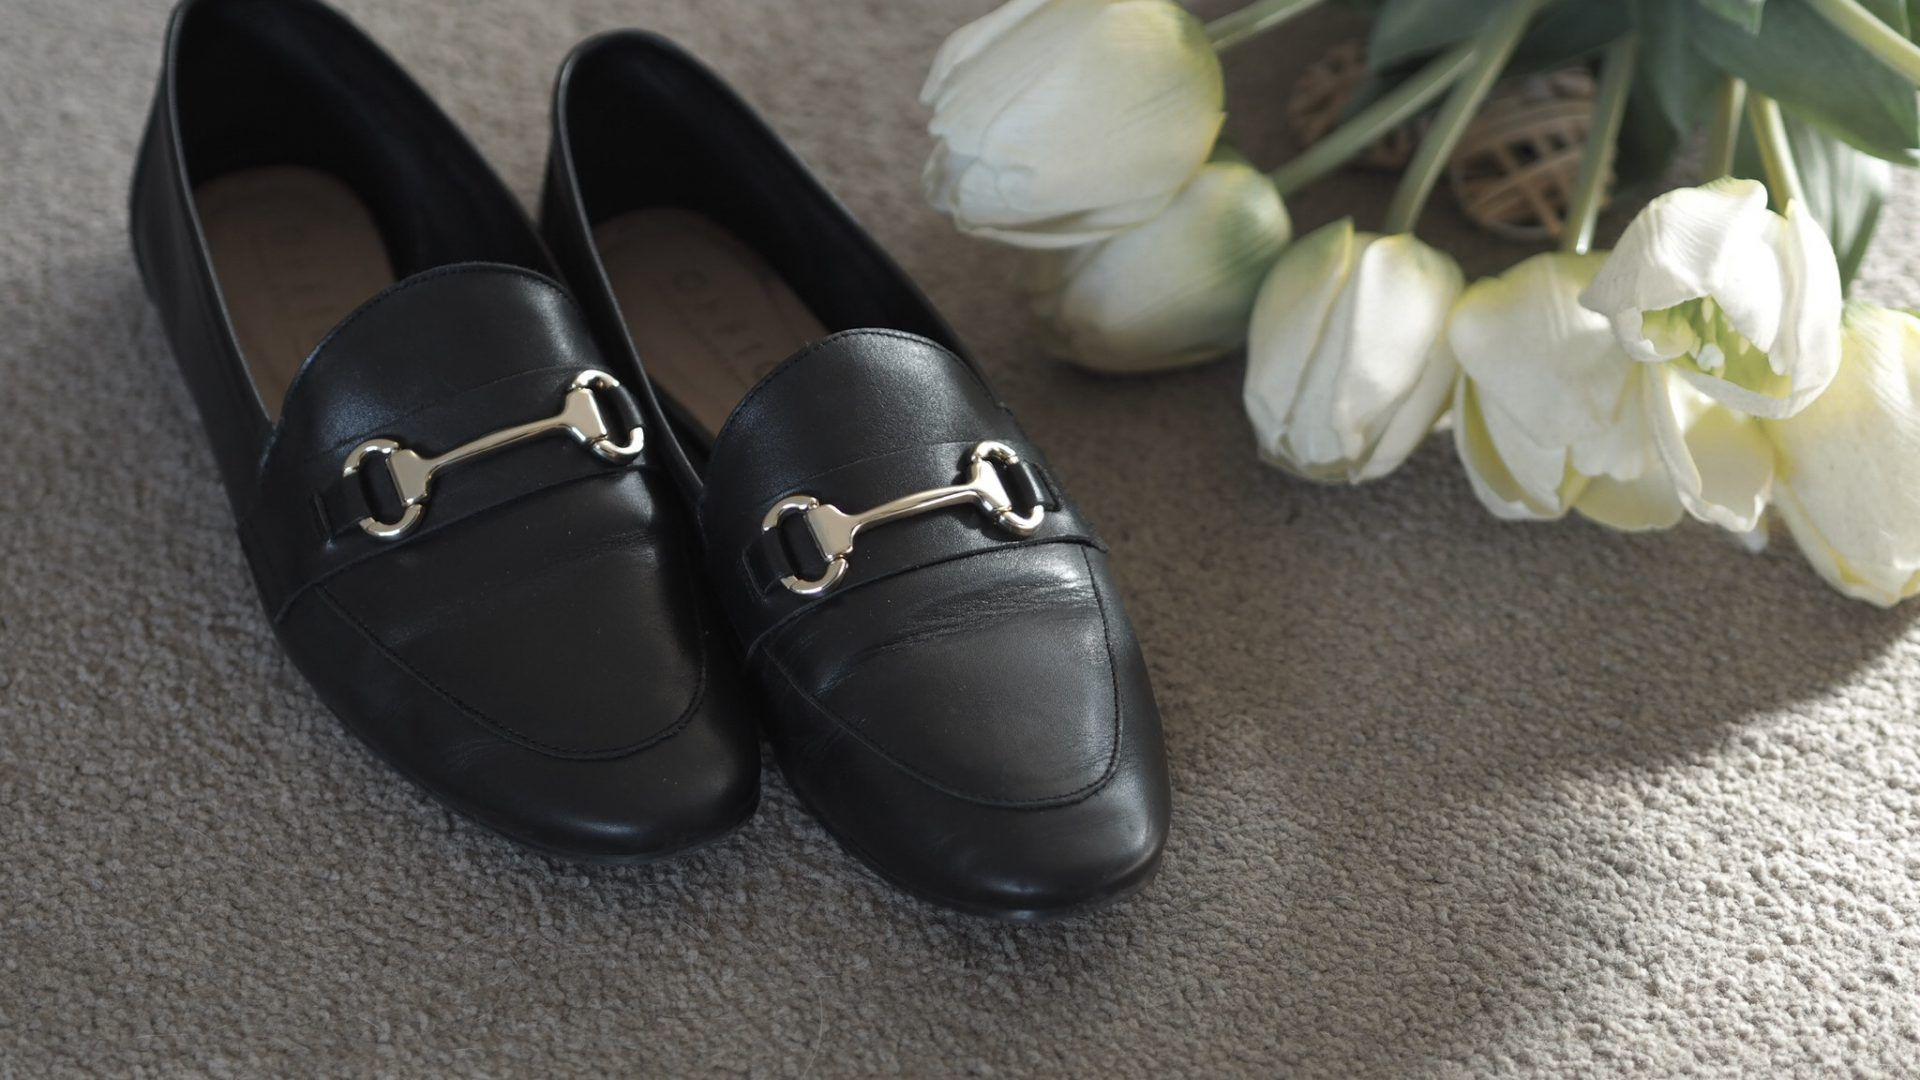 488079221f4 GUCCI ALTERNATIVES THAT ARE MUCH MORE AFFORDABLE  YES PLEASE!  fbloggers   guccidupe